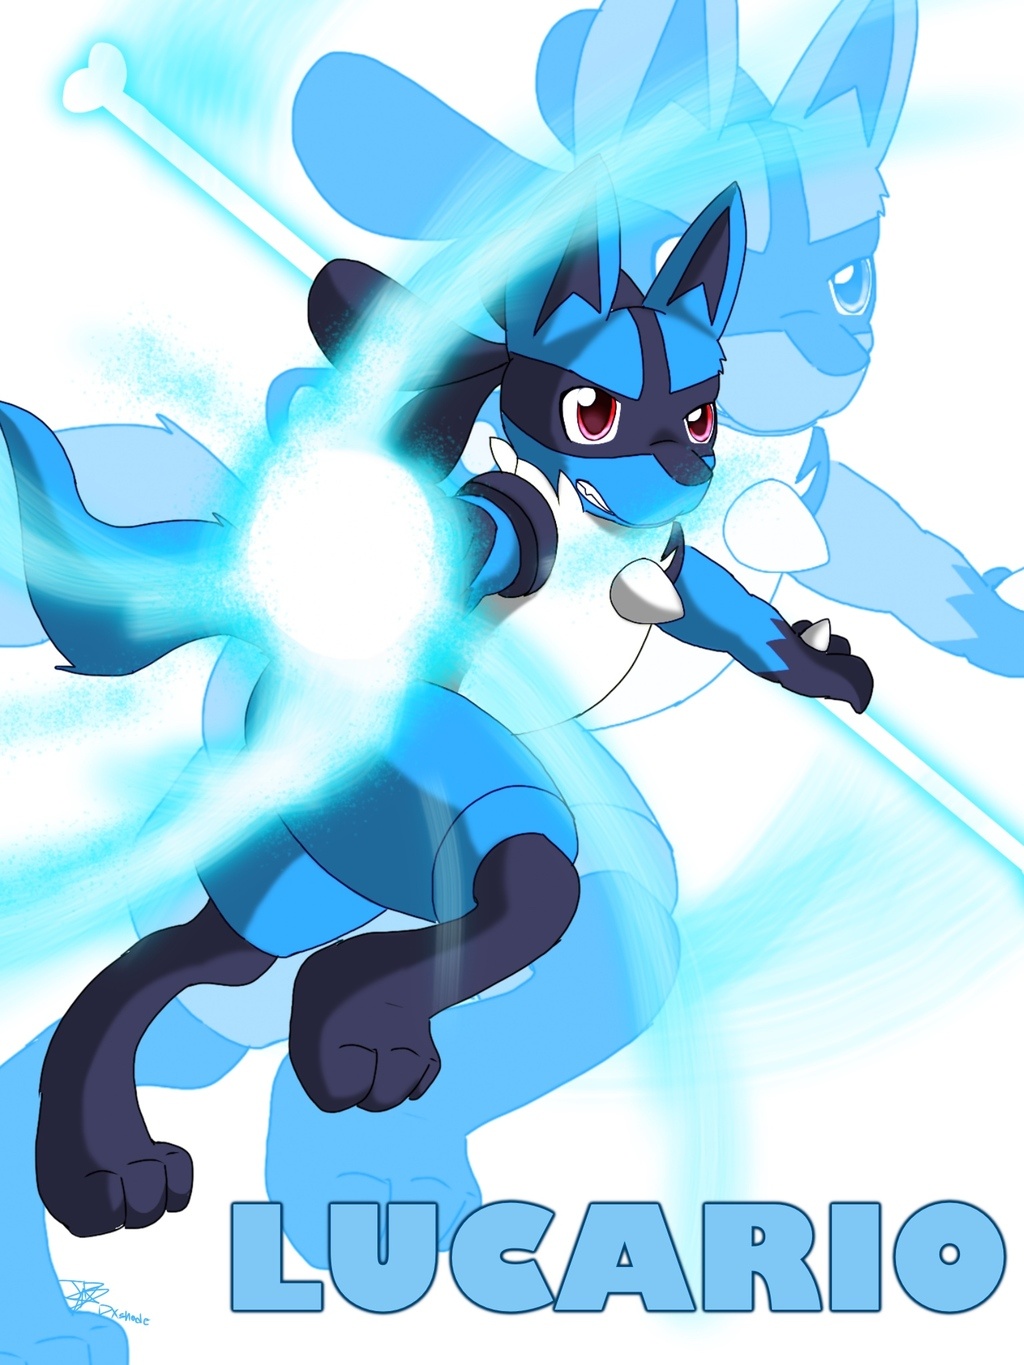 Most recent image: Lucario